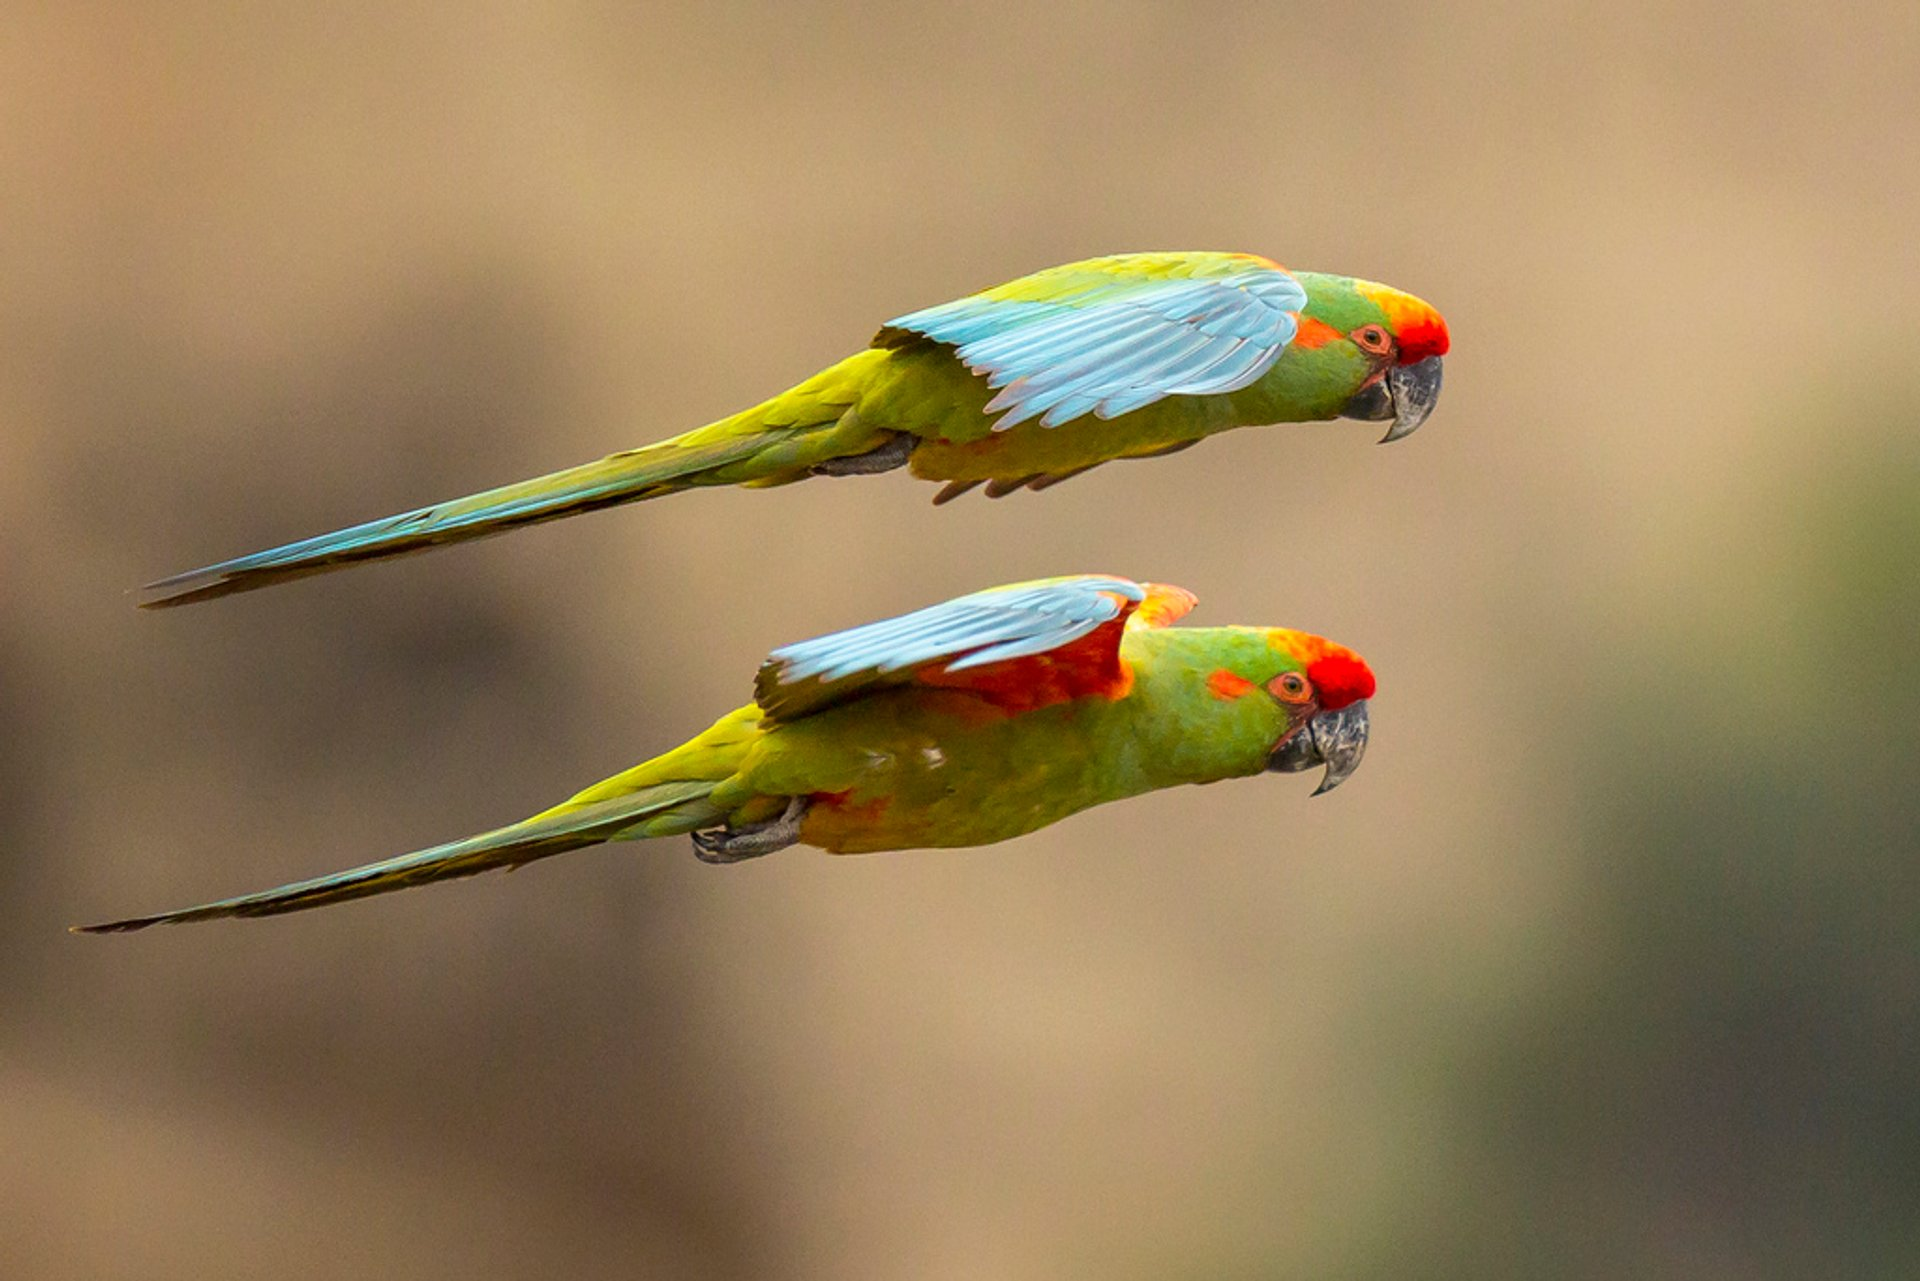 Red-fronted Macaw 2020